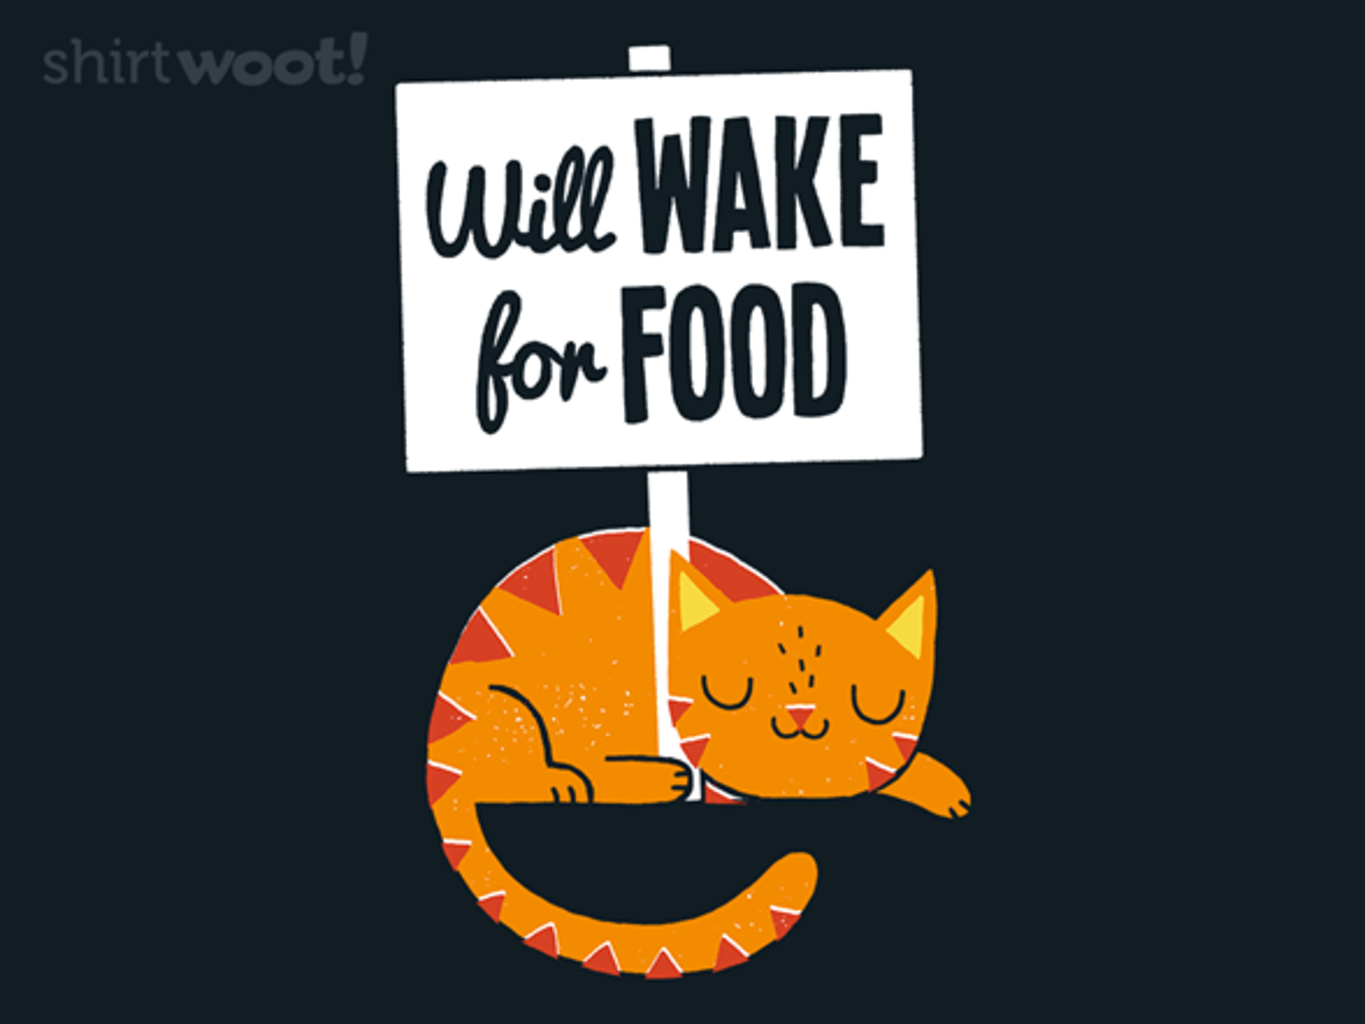 Woot!: Will Wake for Food - $15.00 + Free shipping